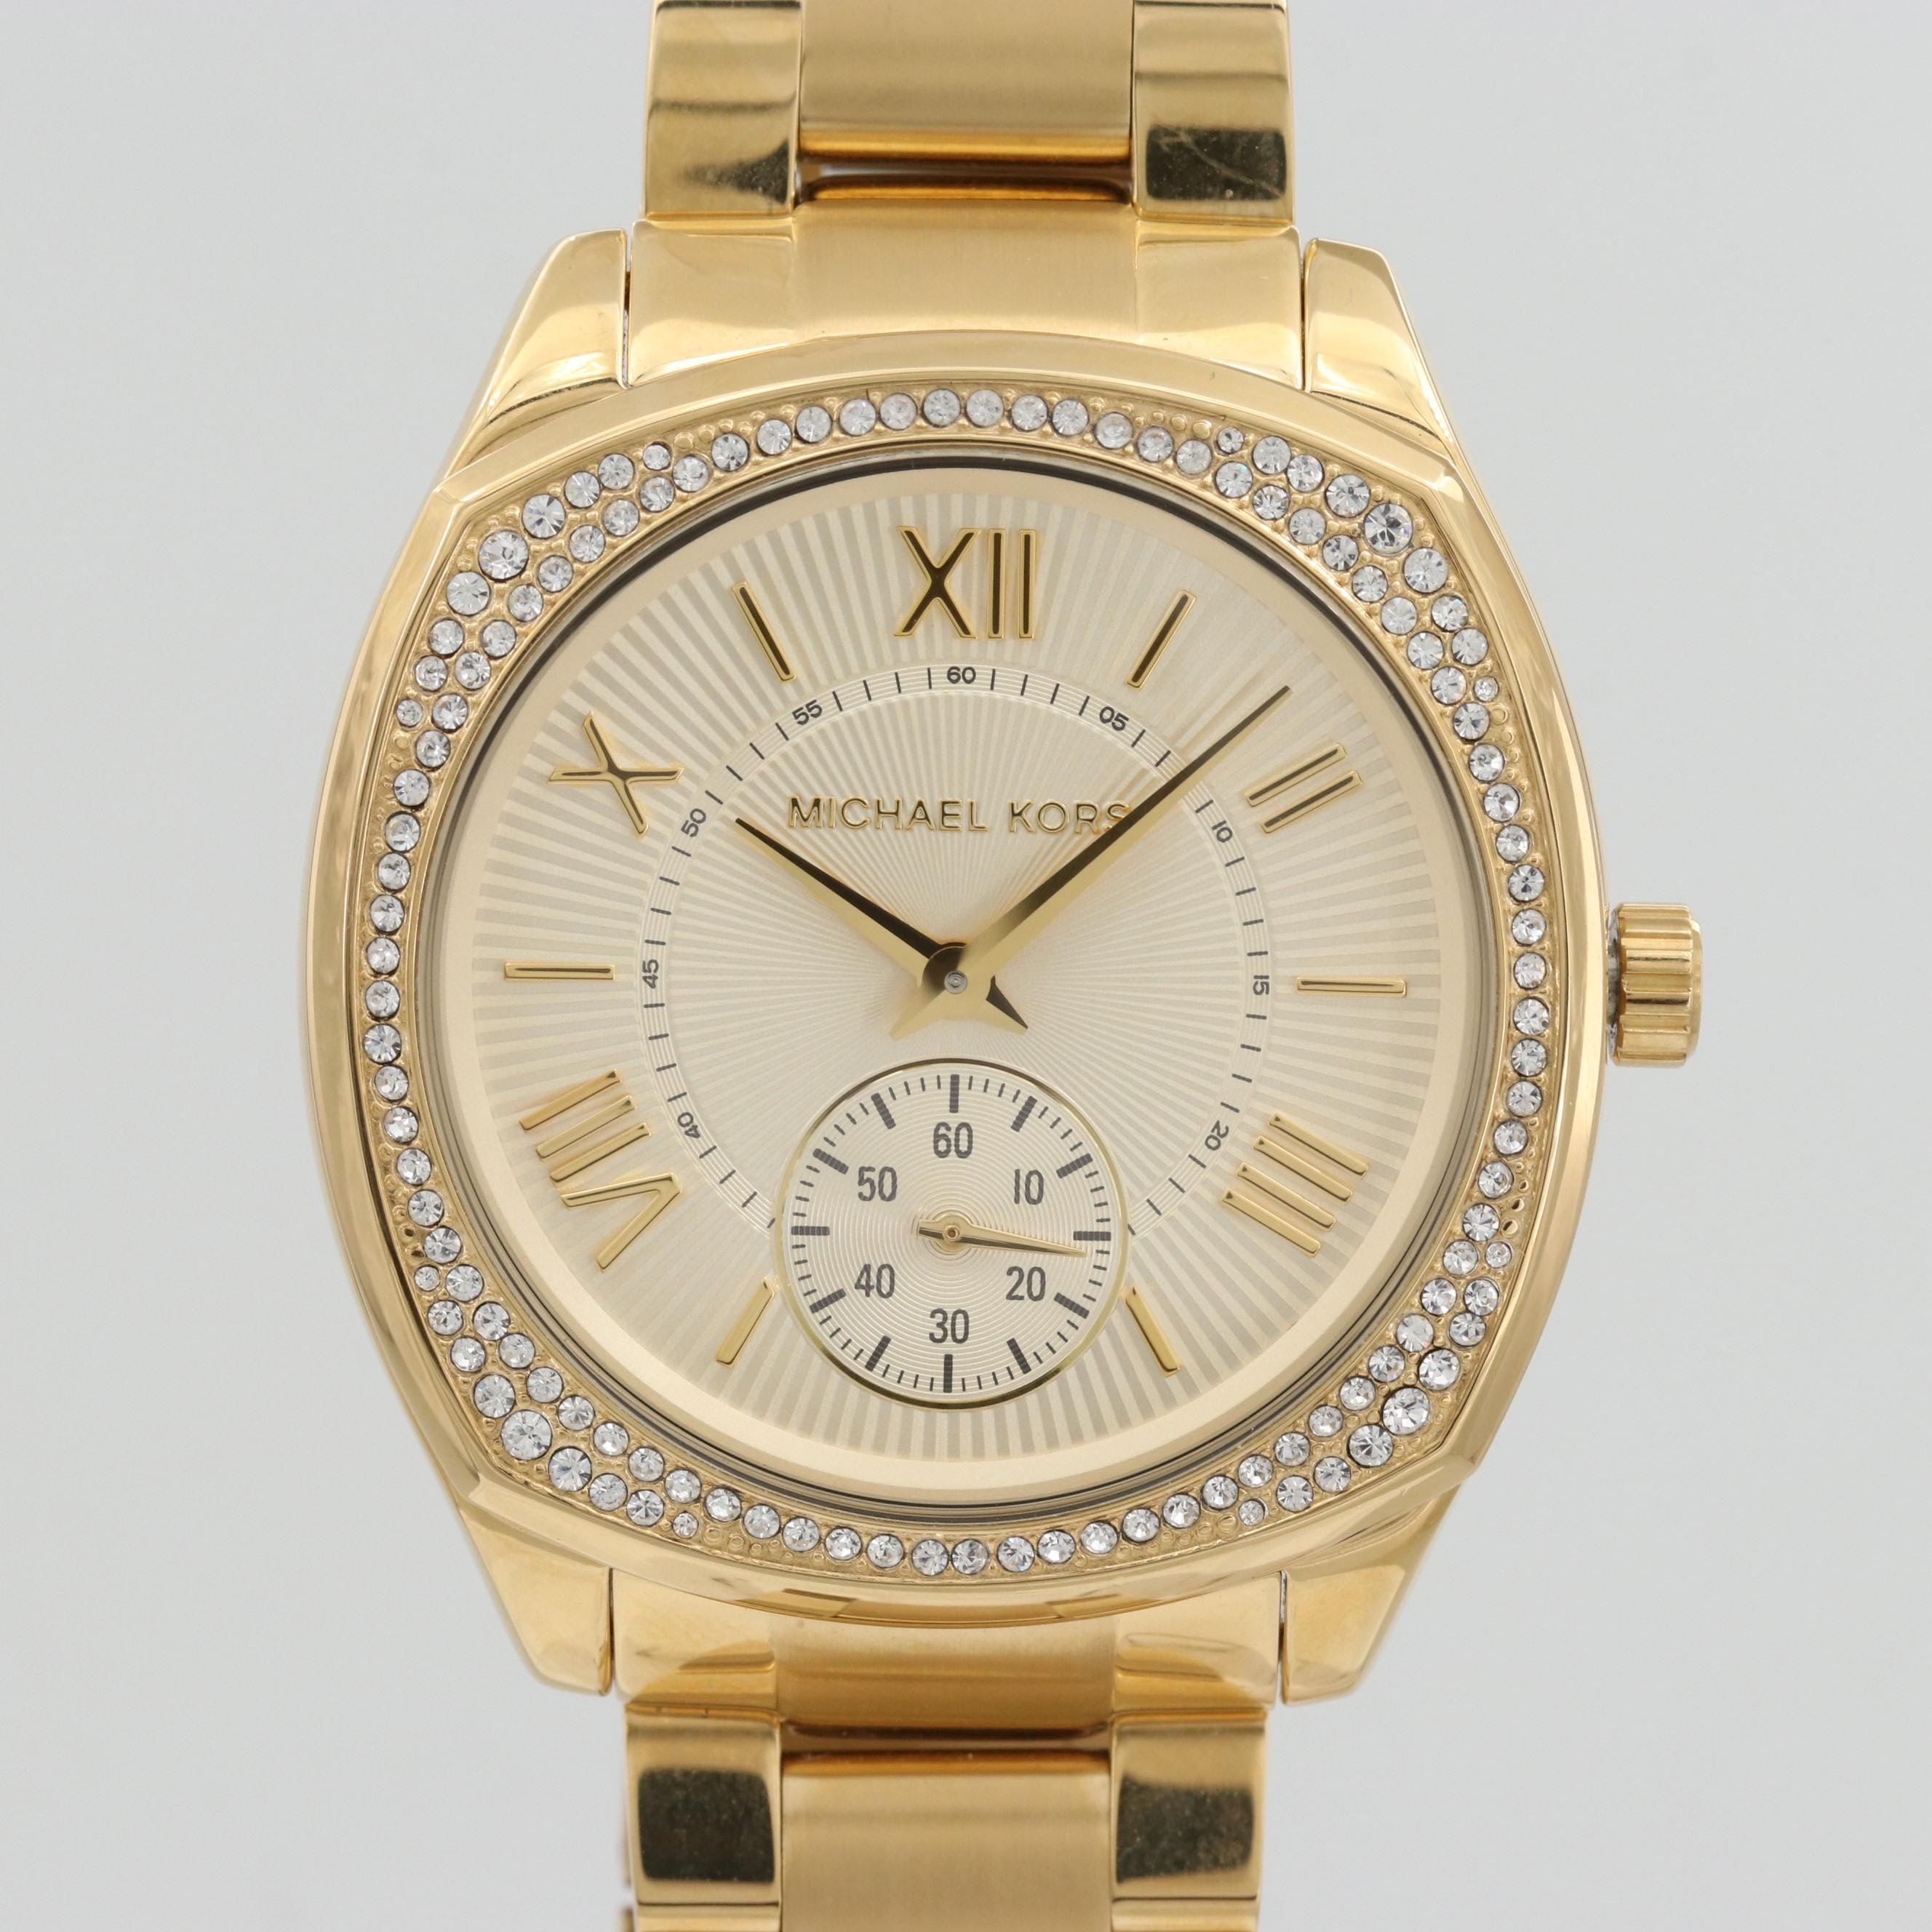 Michael Kors Bryn Gold Tone Quartz Wristwatch With Glass Crystal Bezel